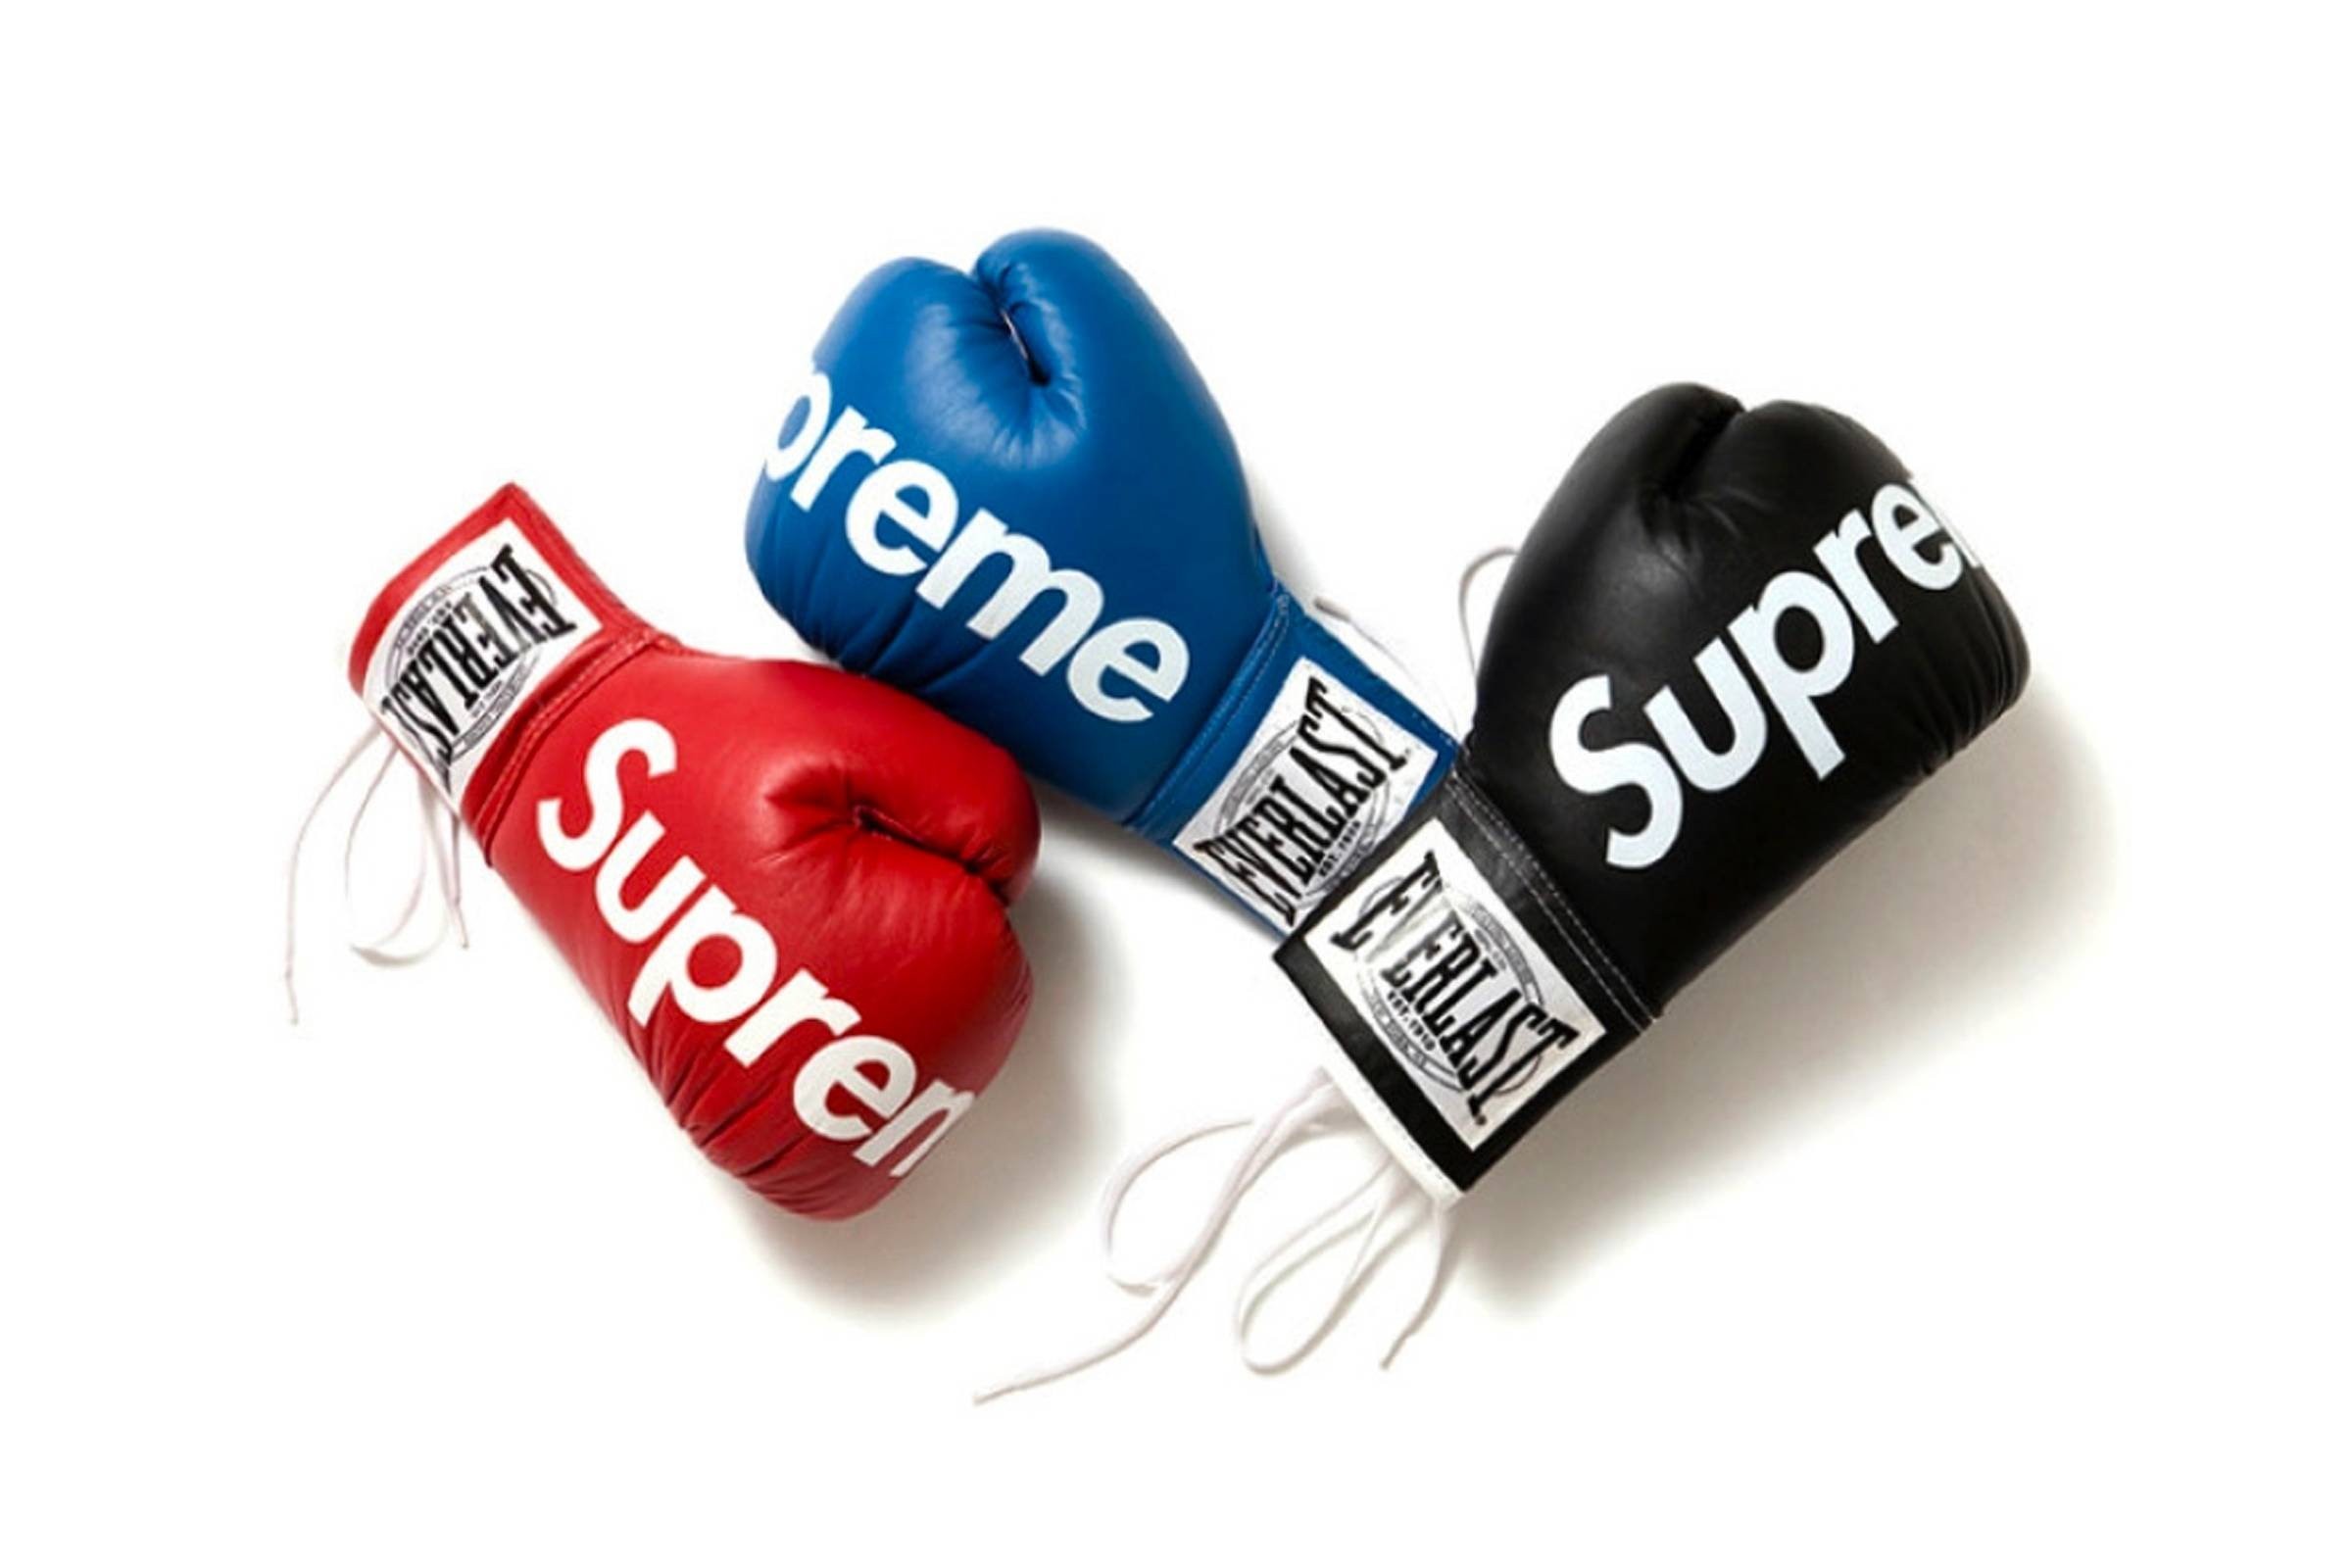 Supreme x Everlast Boxing Gloves (Fall/Winter 2008)